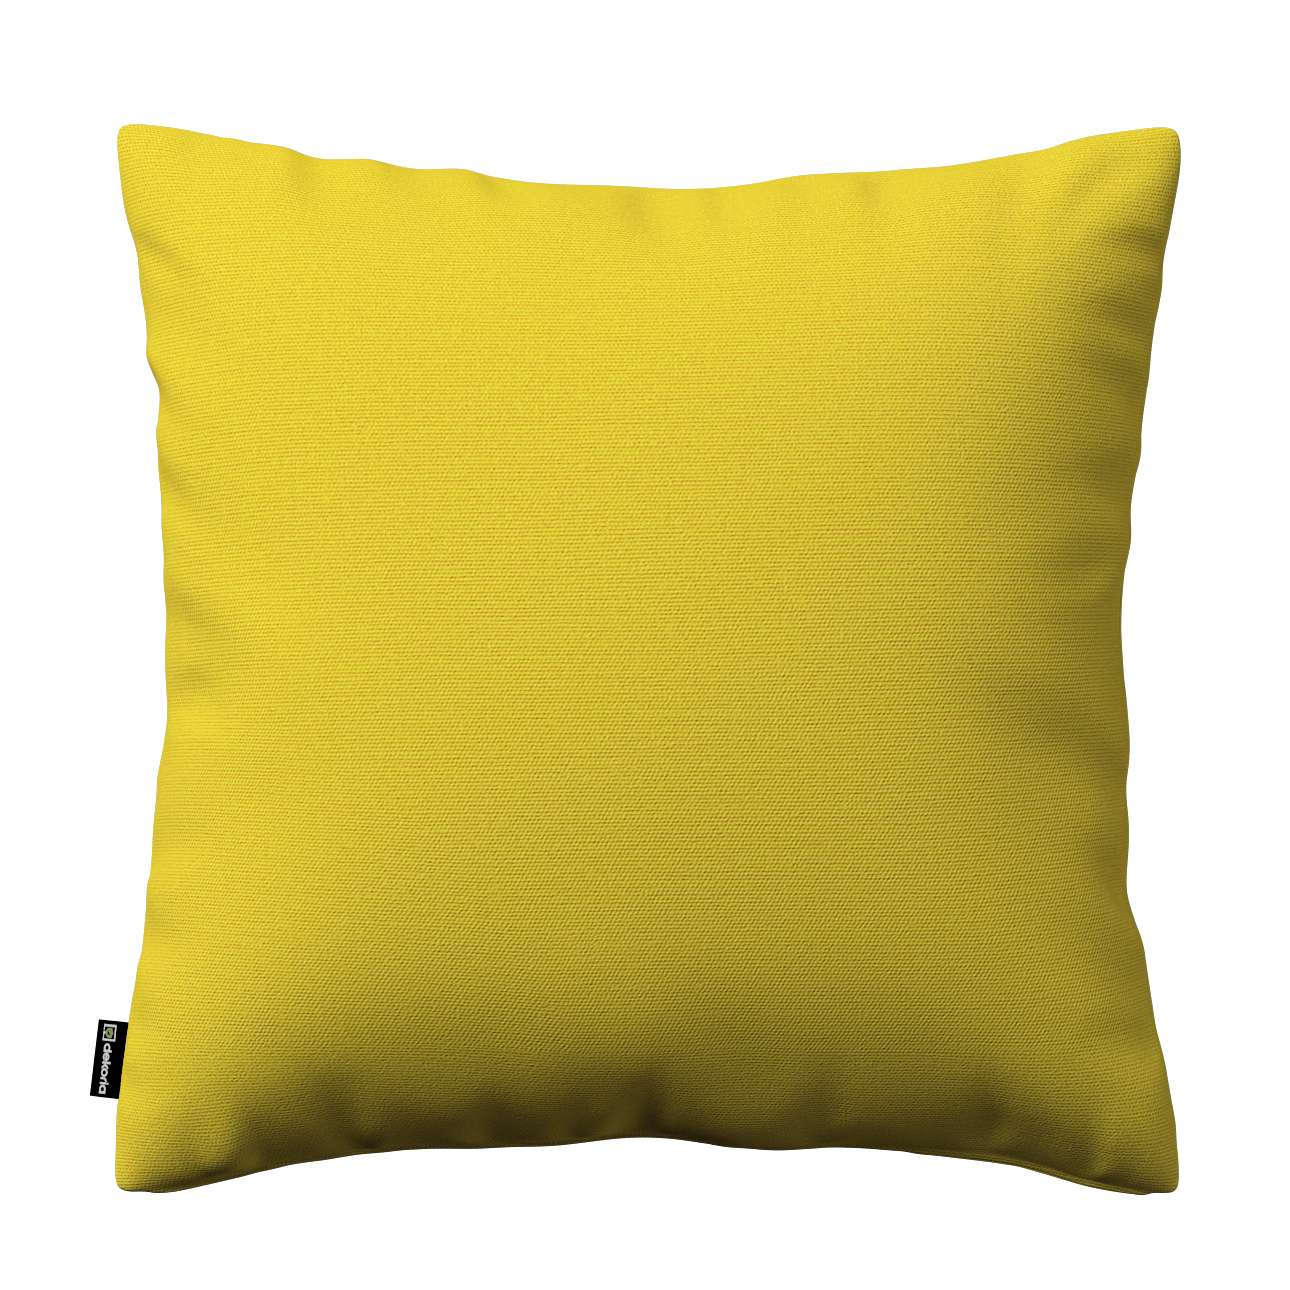 Kinga cushion cover 43 x 43 cm (17 x 17 inch) in collection Loneta , fabric: 133-55